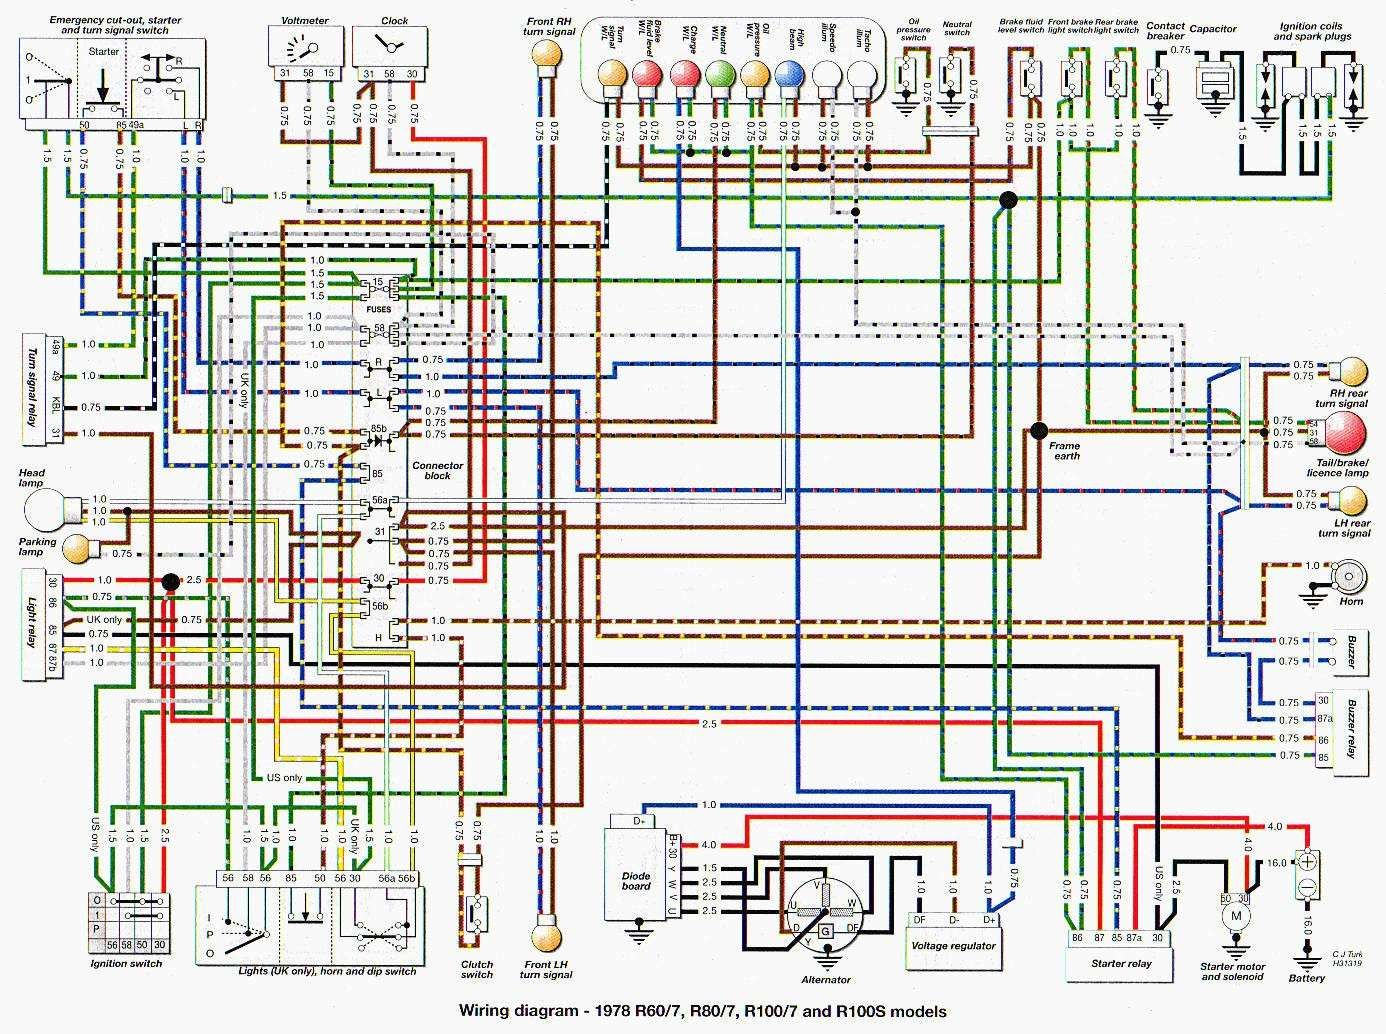 schema electrique bmw k1200lt 5 motorcycle wiring electrical wiring diagram cafe racer bikes [ 1386 x 1034 Pixel ]